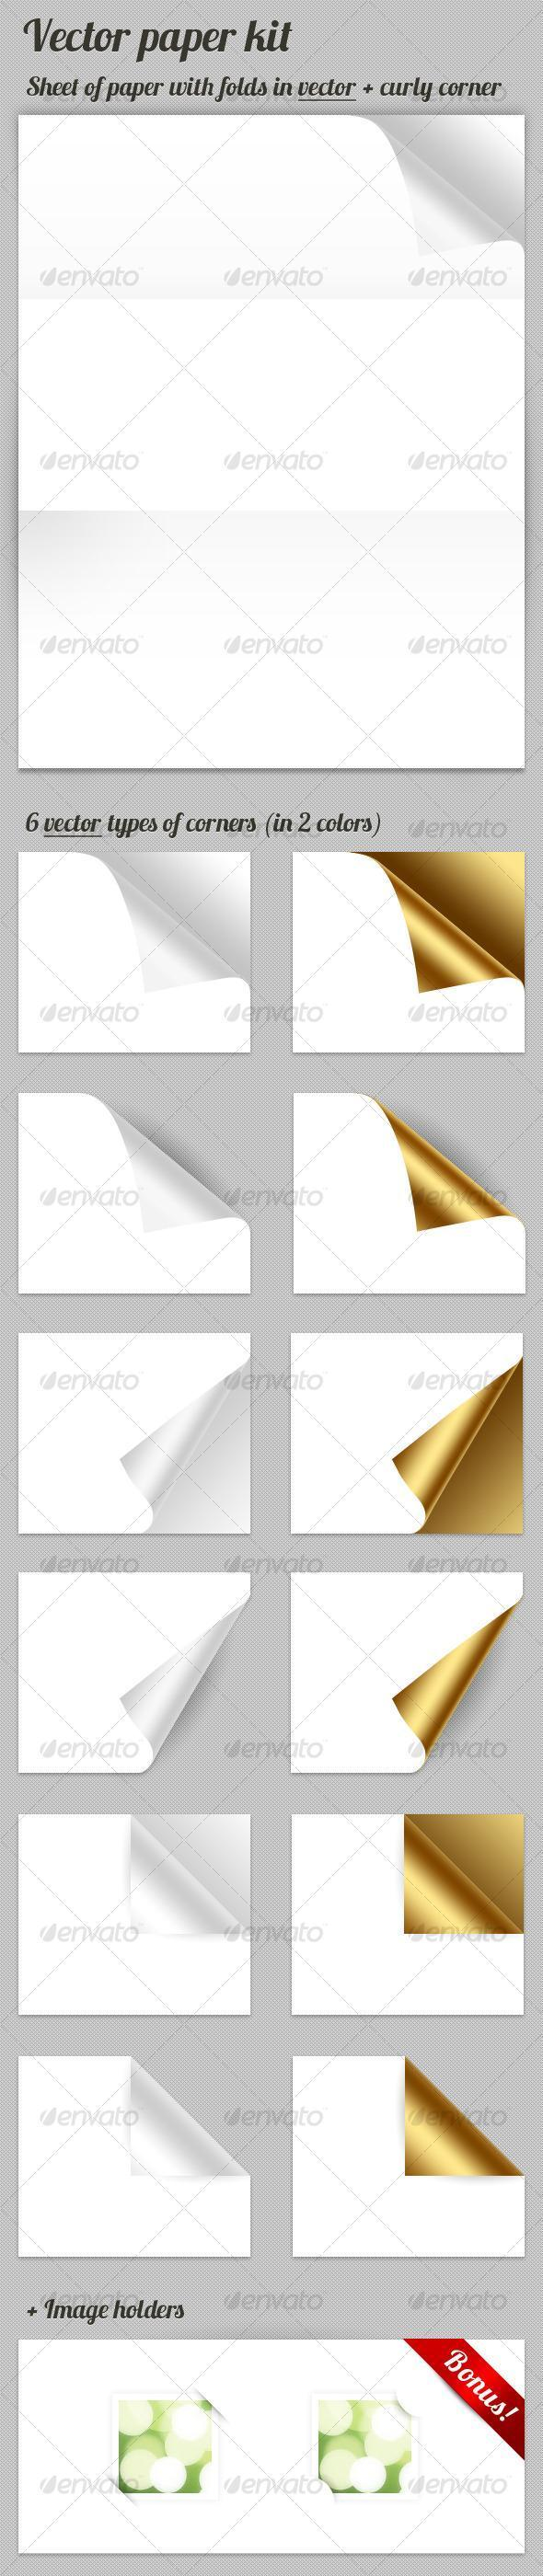 Vector Paper with Curl Page Corner PSD - Premium